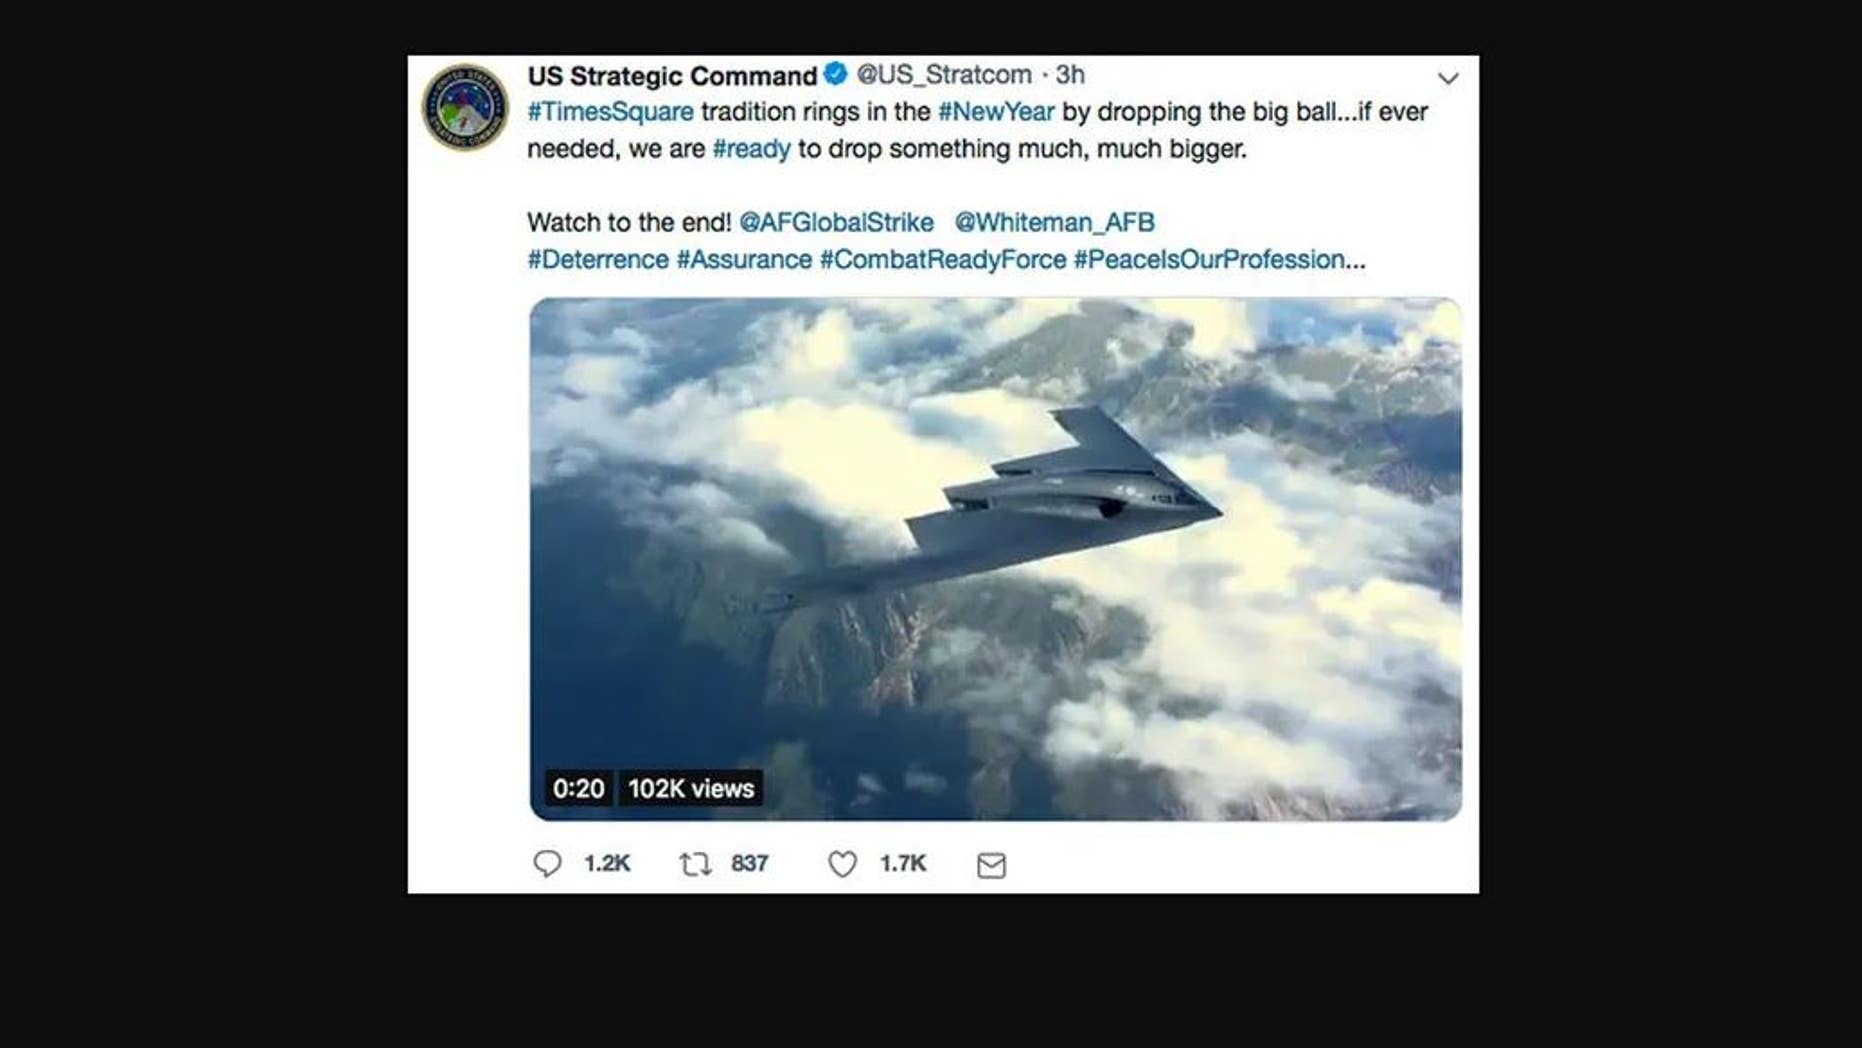 USA military deletes, apologizes for New Year's Eve bomb tweet